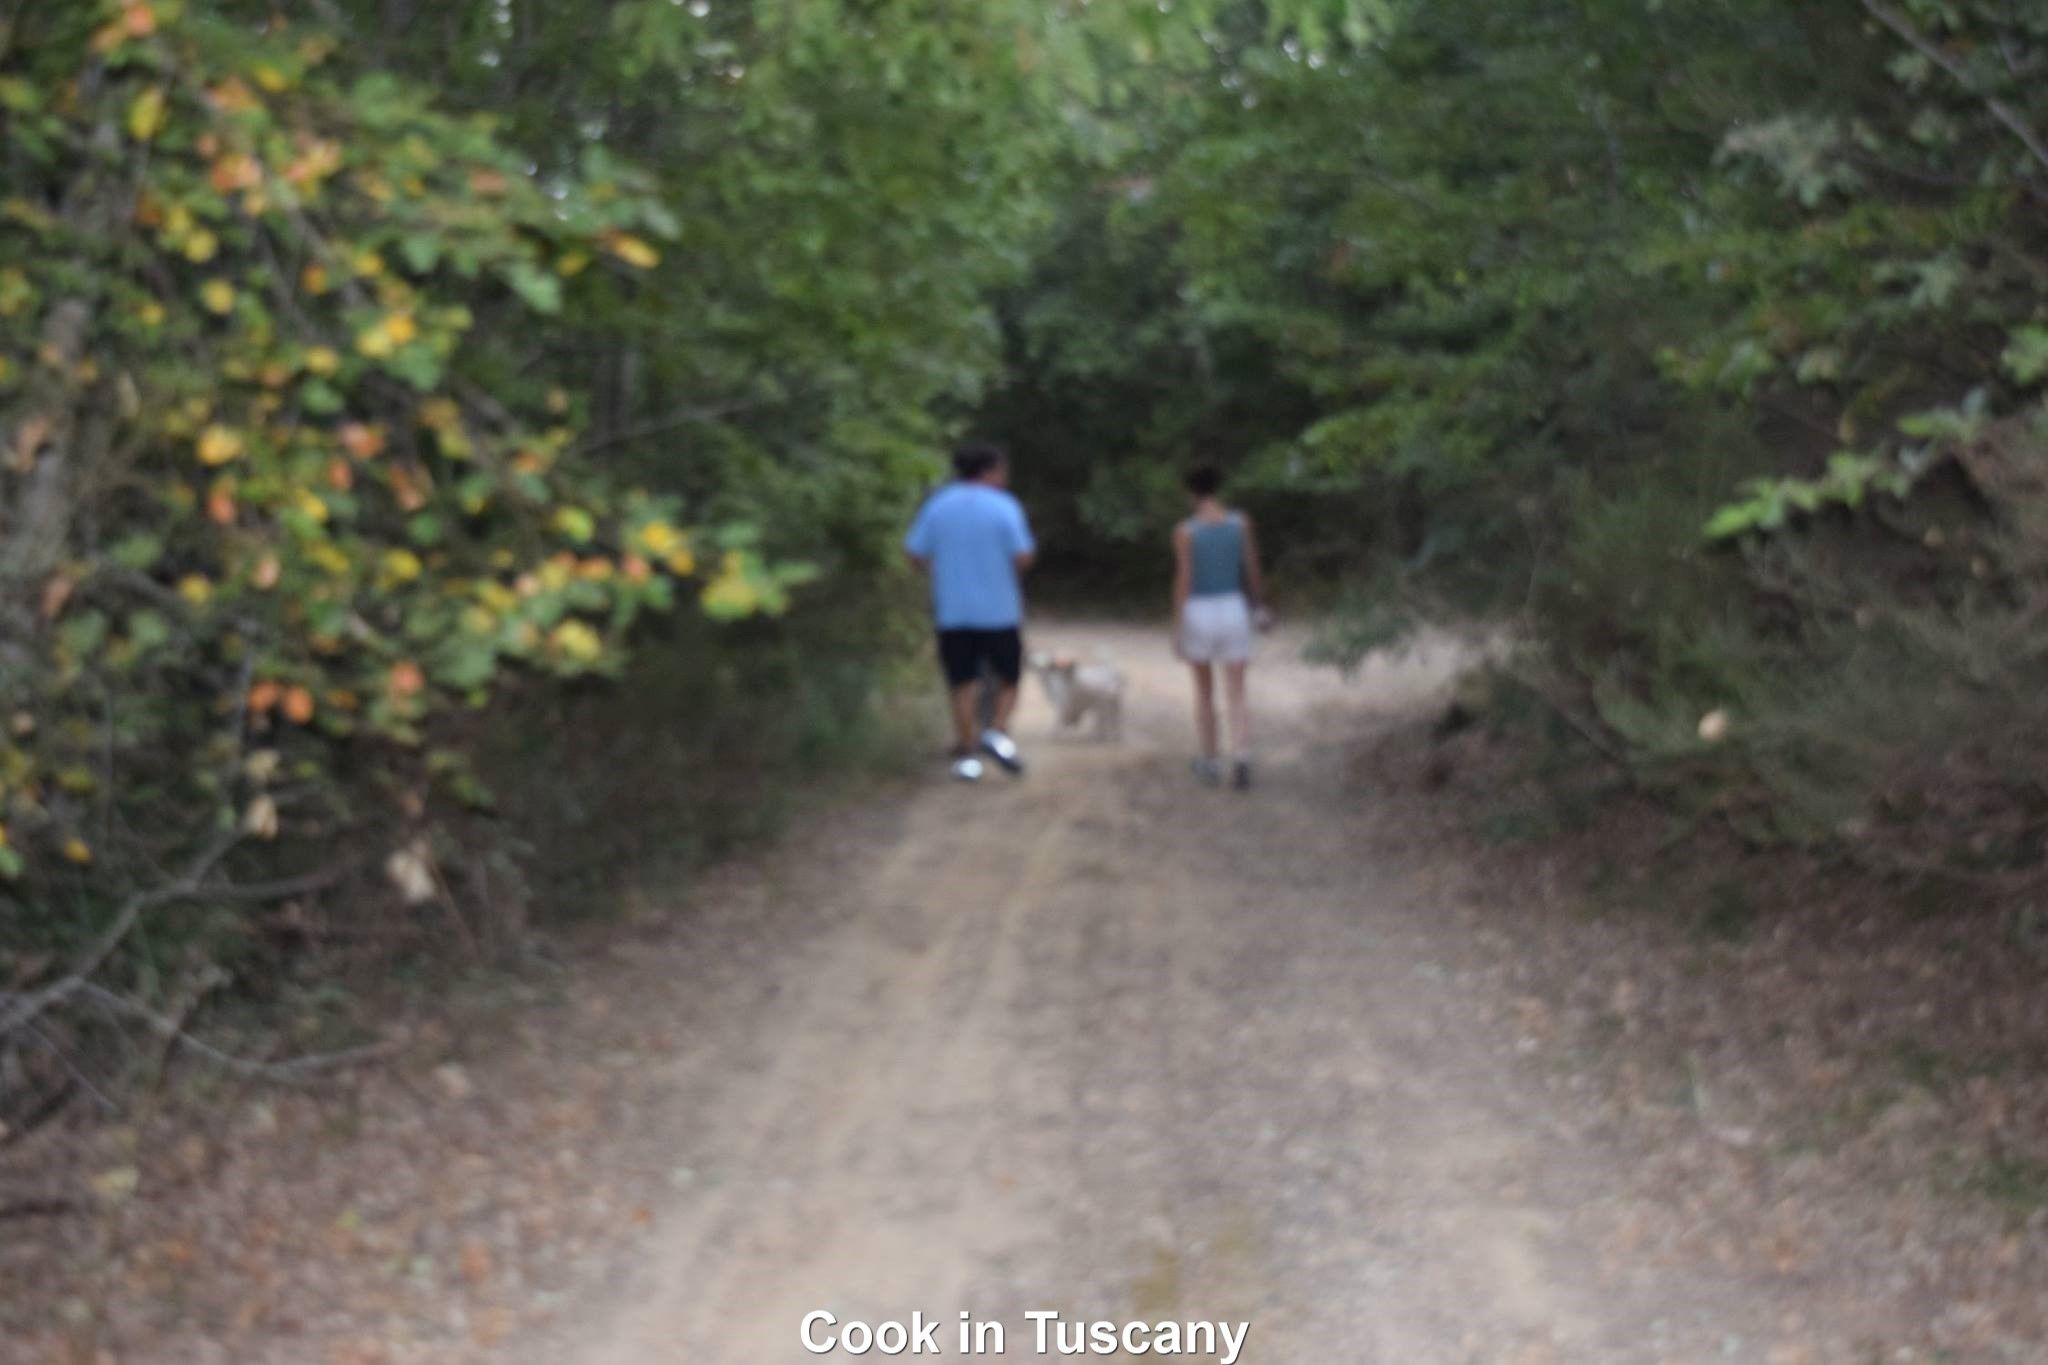 Walking in Tuscany.  www.cookintuscany.com   #tuscany #montefollonico #cookintuscany #Italy #cookingschool #culinary #cooking #school #montepulciano #cookery #cucina #travel #tour #trip #vacation #pienza #cook #tuscan #cortona #allinclusive